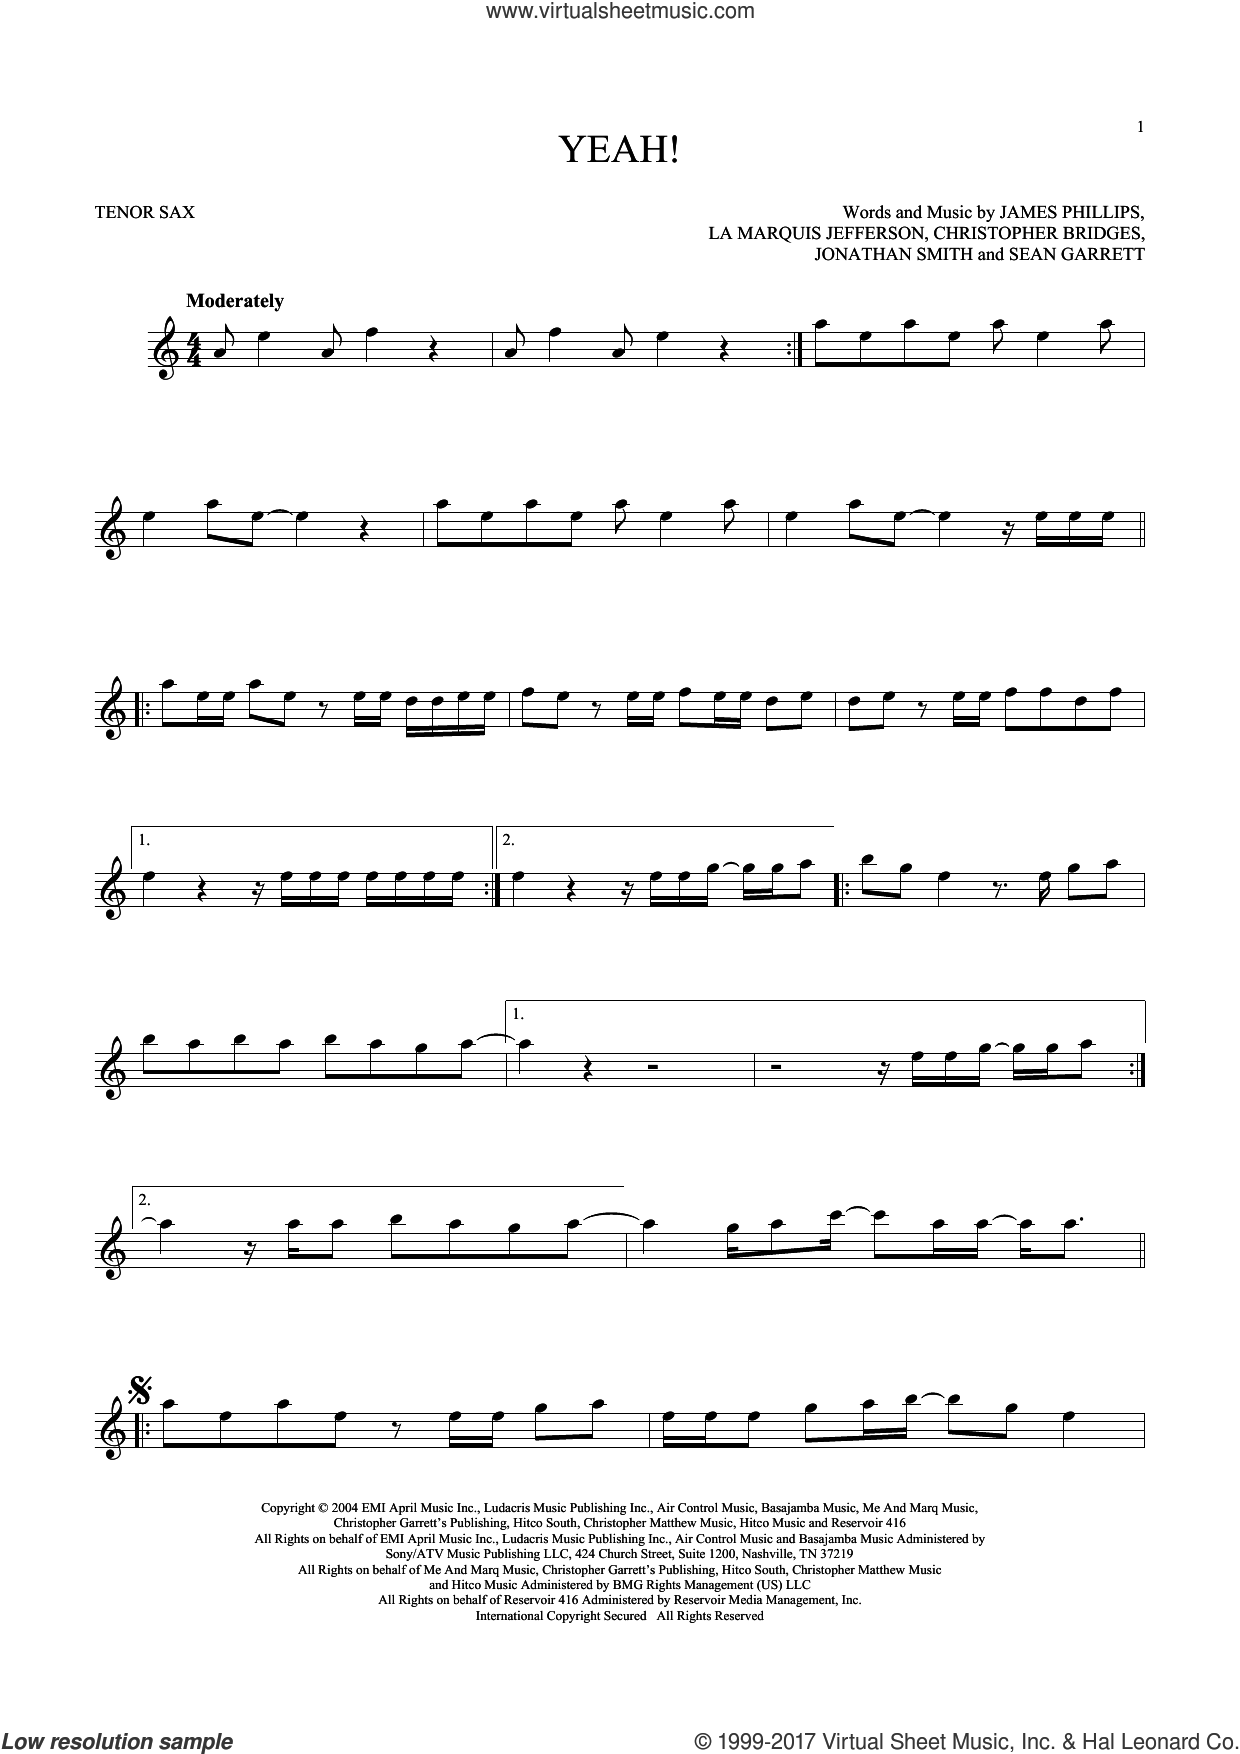 Yeah! sheet music for tenor saxophone solo by Usher featuring Lil Jon & Ludacris, Christopher Bridges, James Phillips, Jonathan Smith, La Marquis Jefferson, Laurence Smith and Sean Garrett, intermediate skill level